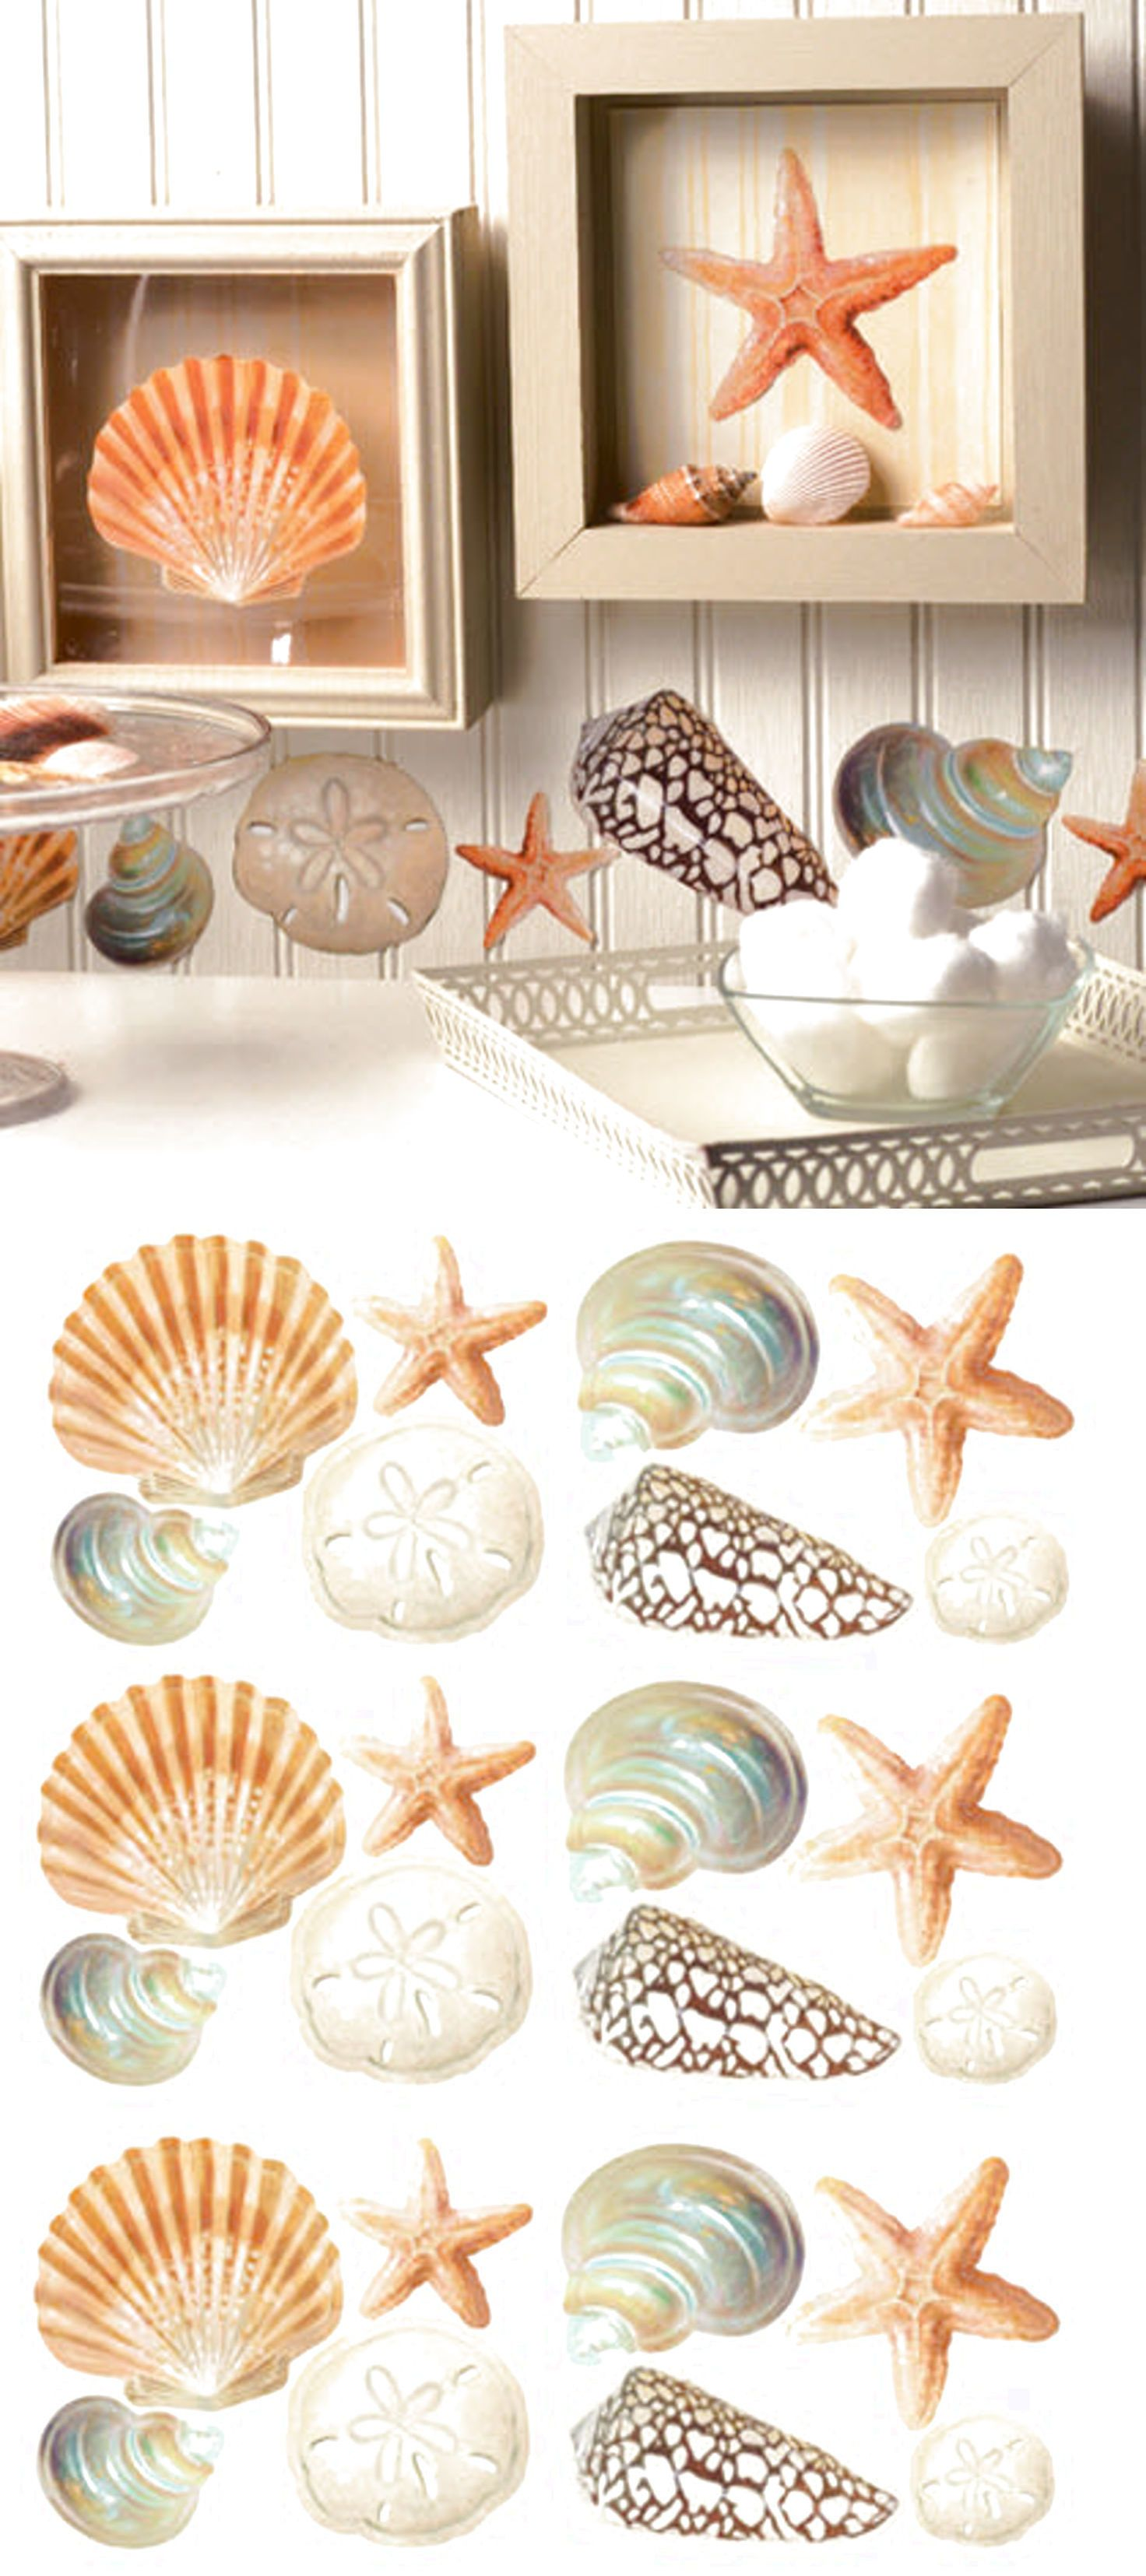 WALLIES SEASHELLS Wall Stickers 24 Decals Bathroom Decor Shells Ocean Sea  Beach $16.99